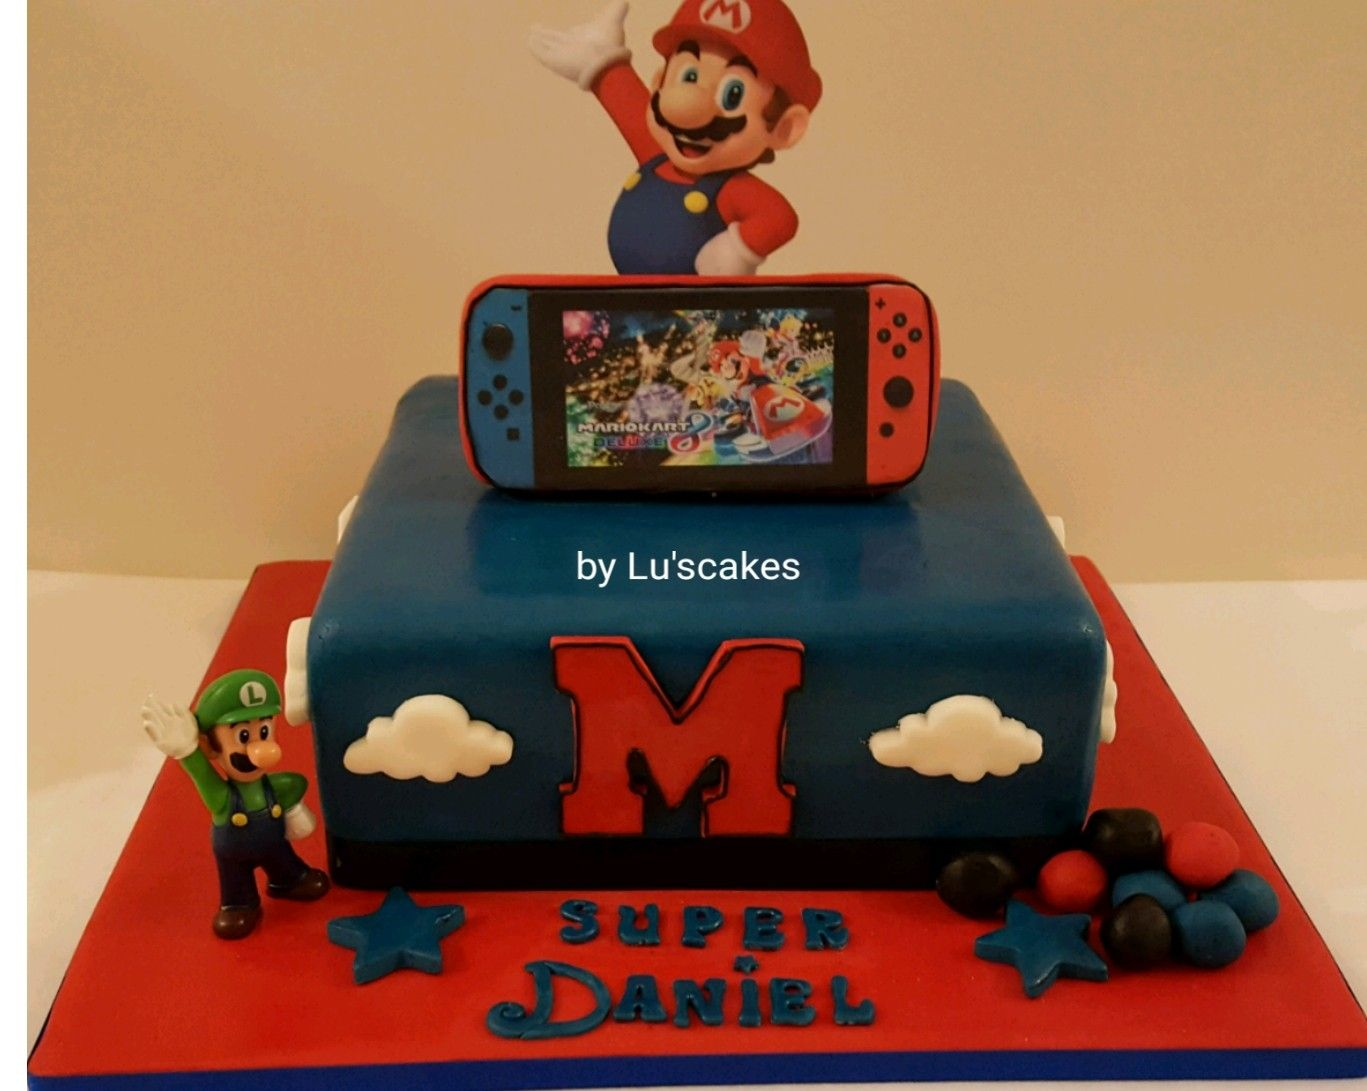 Outstanding Super Mario Nintendo Switch Chocolate Birthaday Cake By Luscakes Funny Birthday Cards Online Alyptdamsfinfo